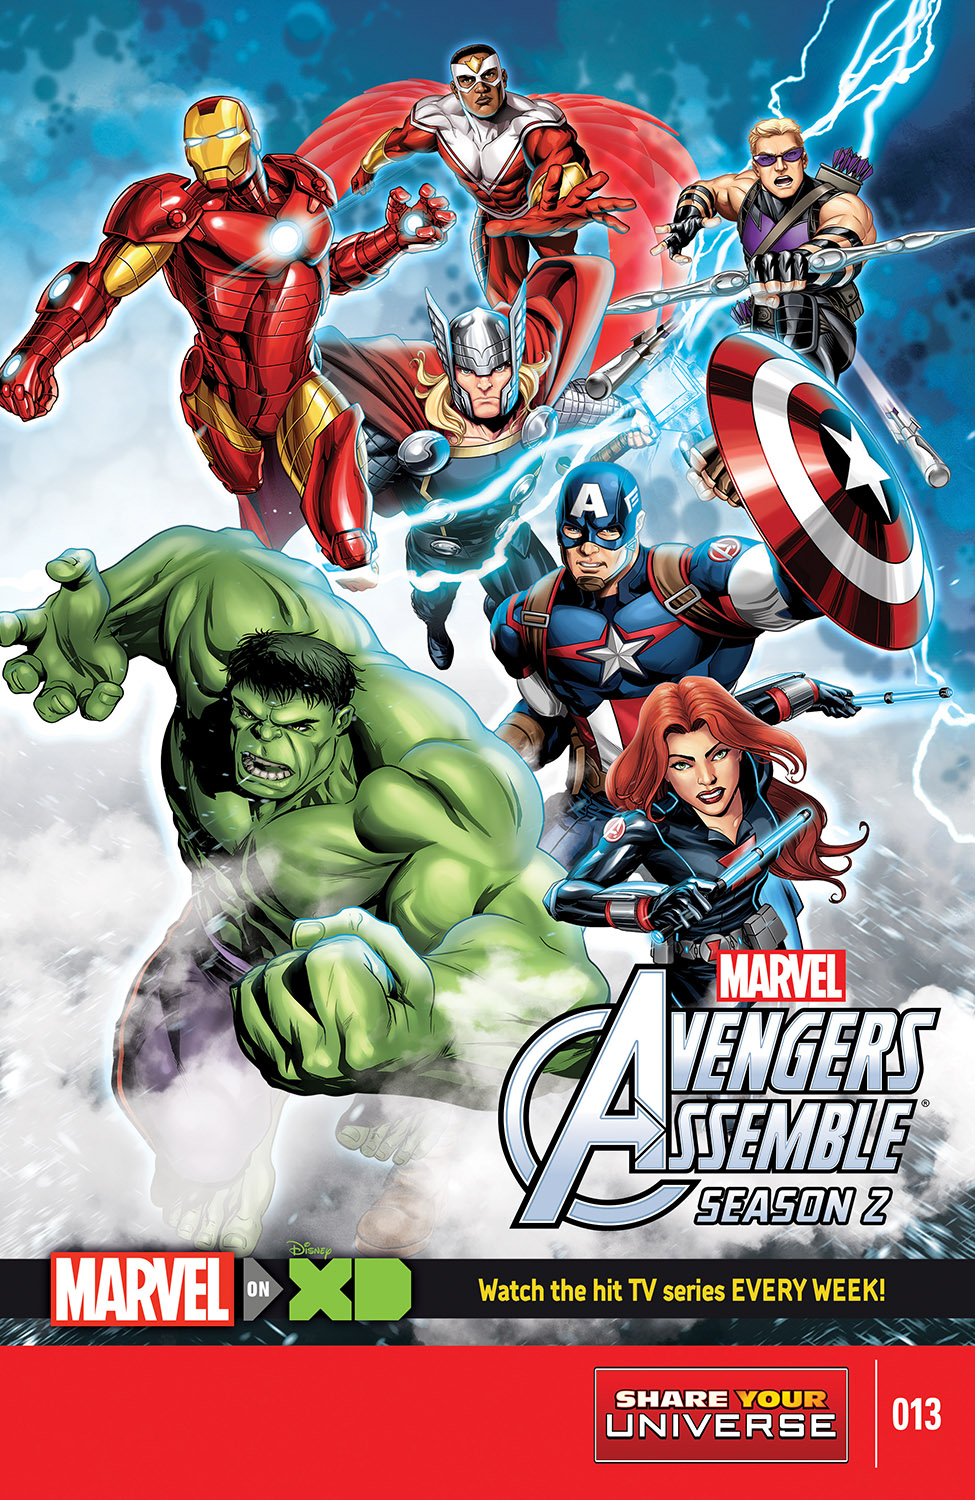 Marvel Universe Avengers Assemble Season Two (2014) #13